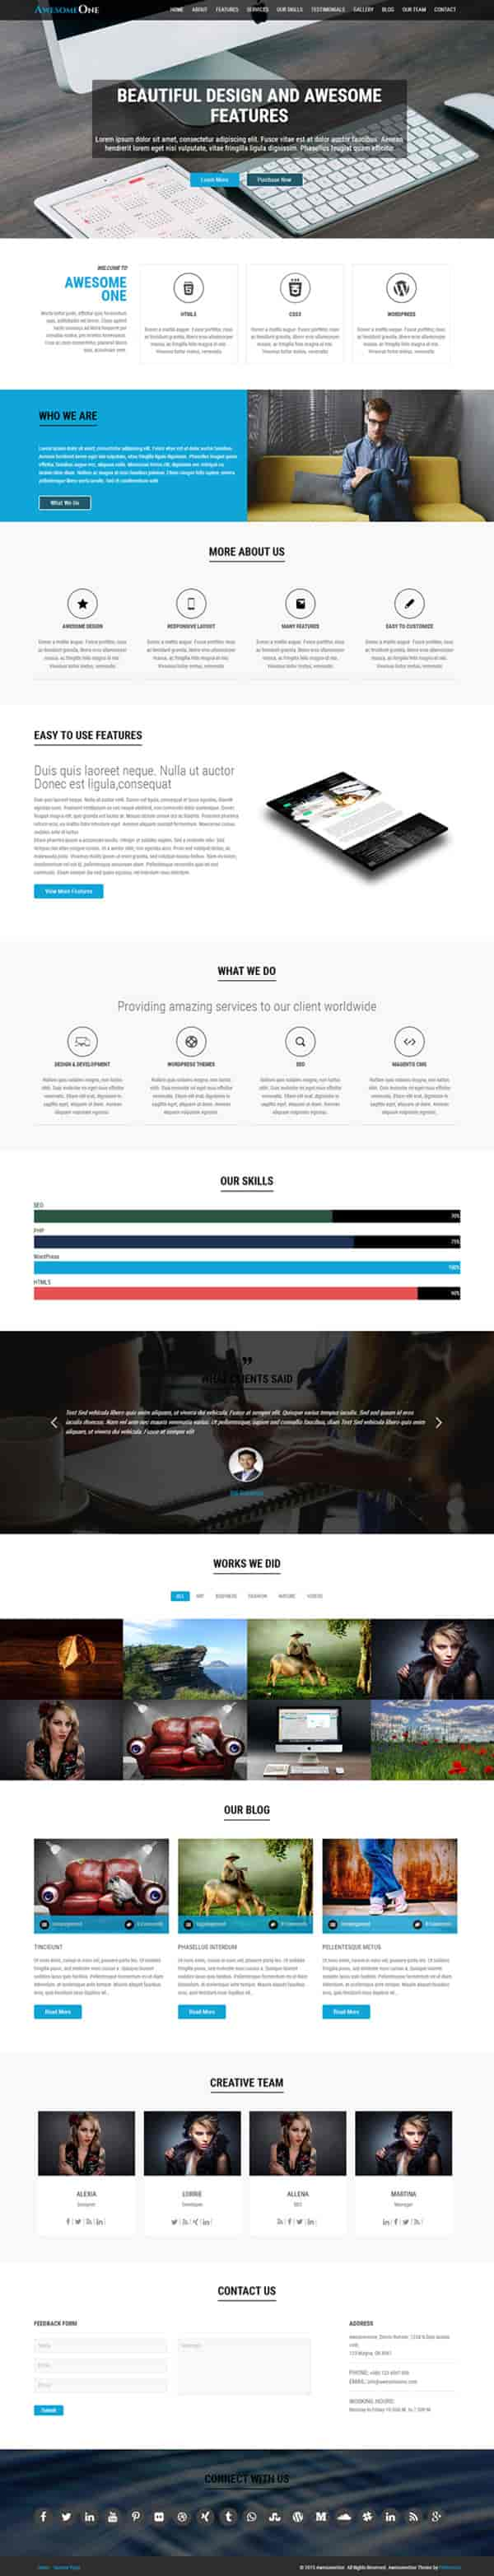 awesomeone-wordpress-theme